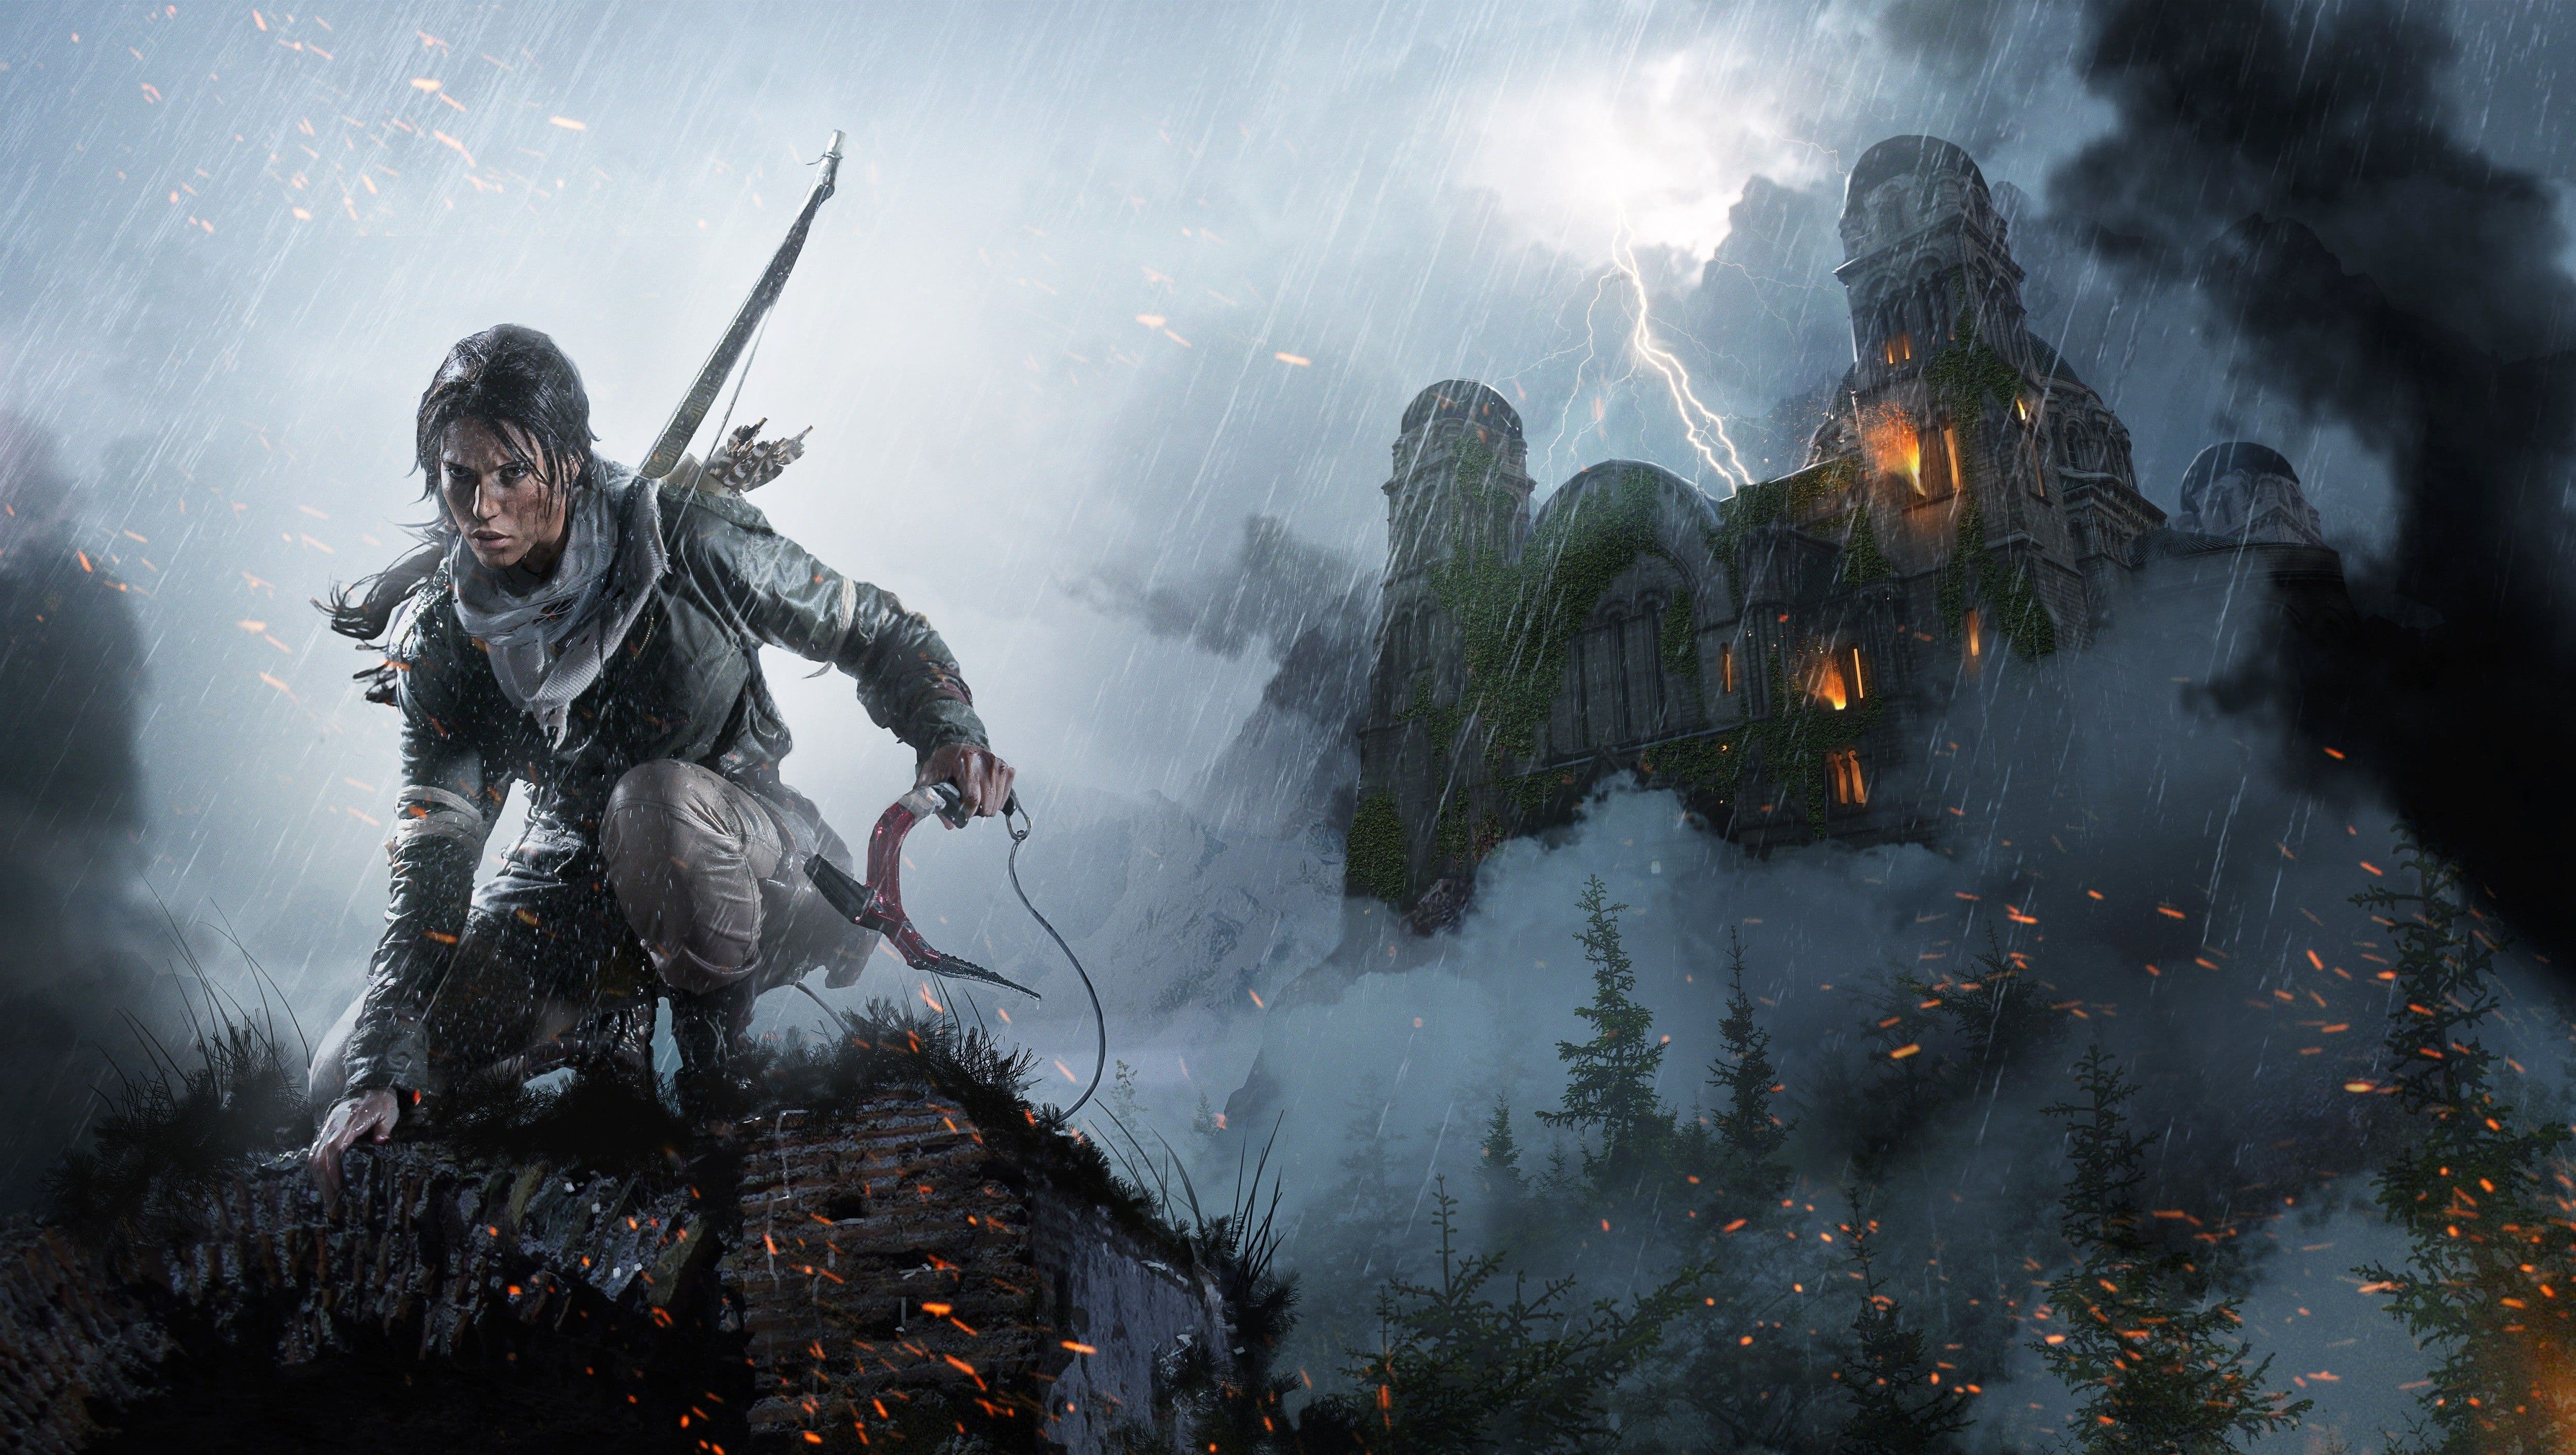 Rise Of The Tomb Raider Hd Wallpapers 7wallpapers Net